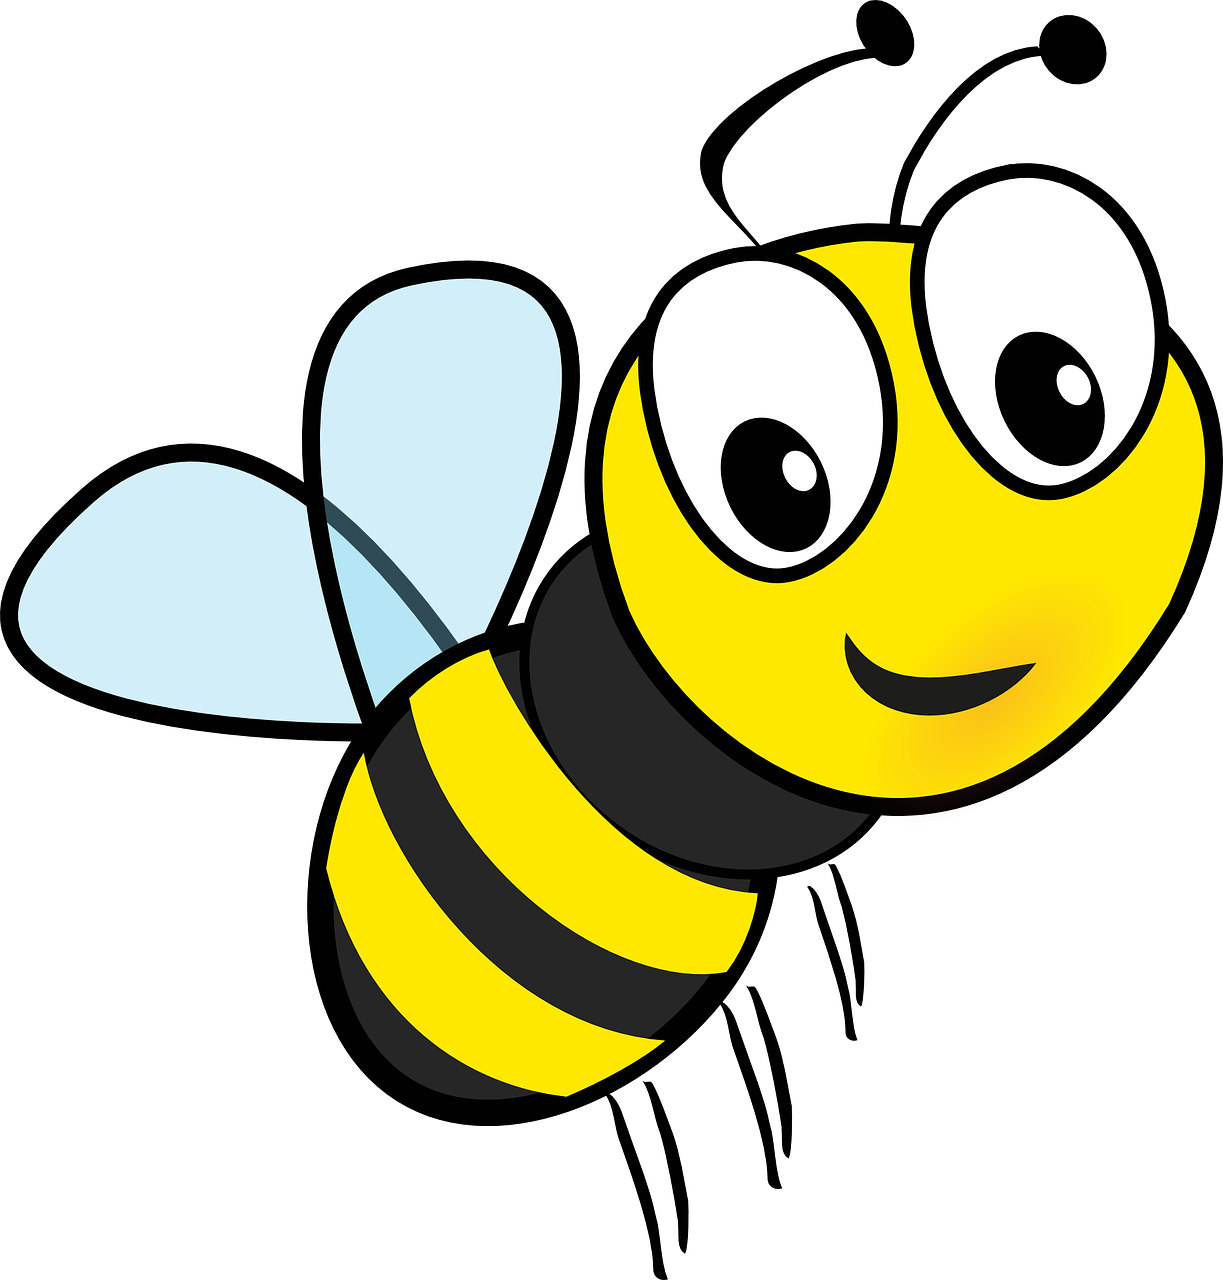 Surprise pictures of cartoon. Bee clipart transparent background